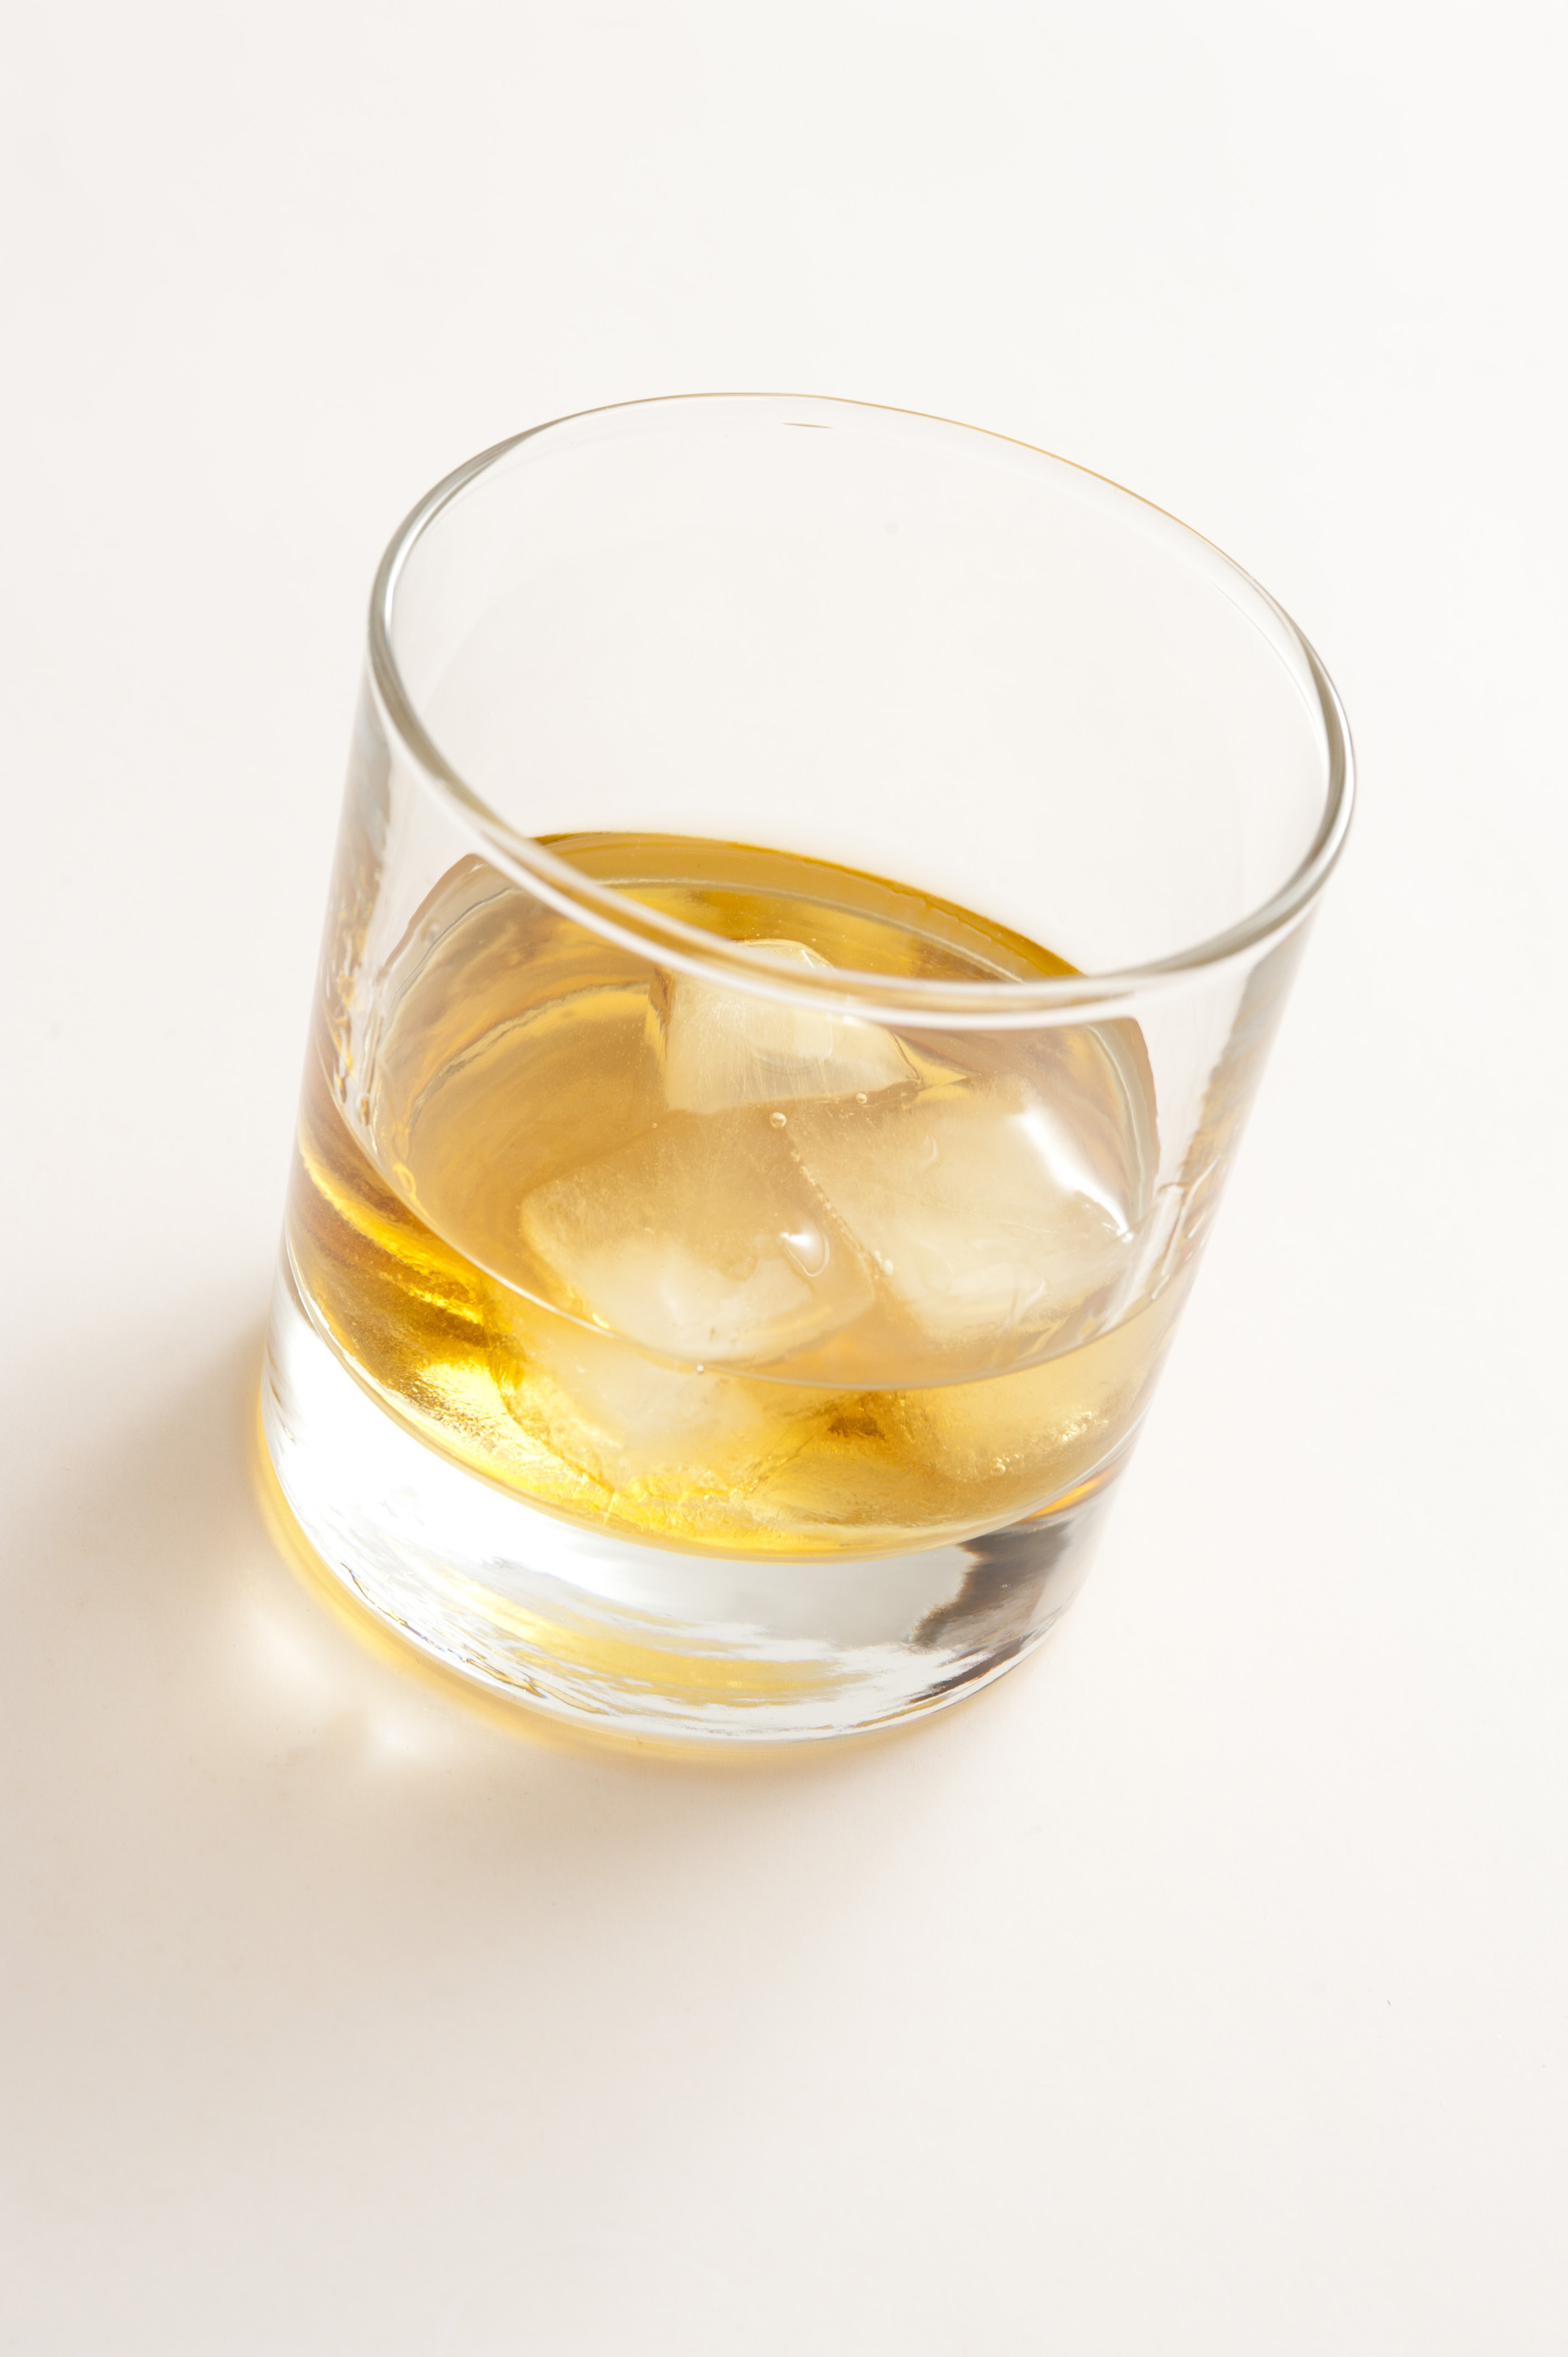 Free Stock Photo 10469 Whiskey on the rocks | freeimageslive